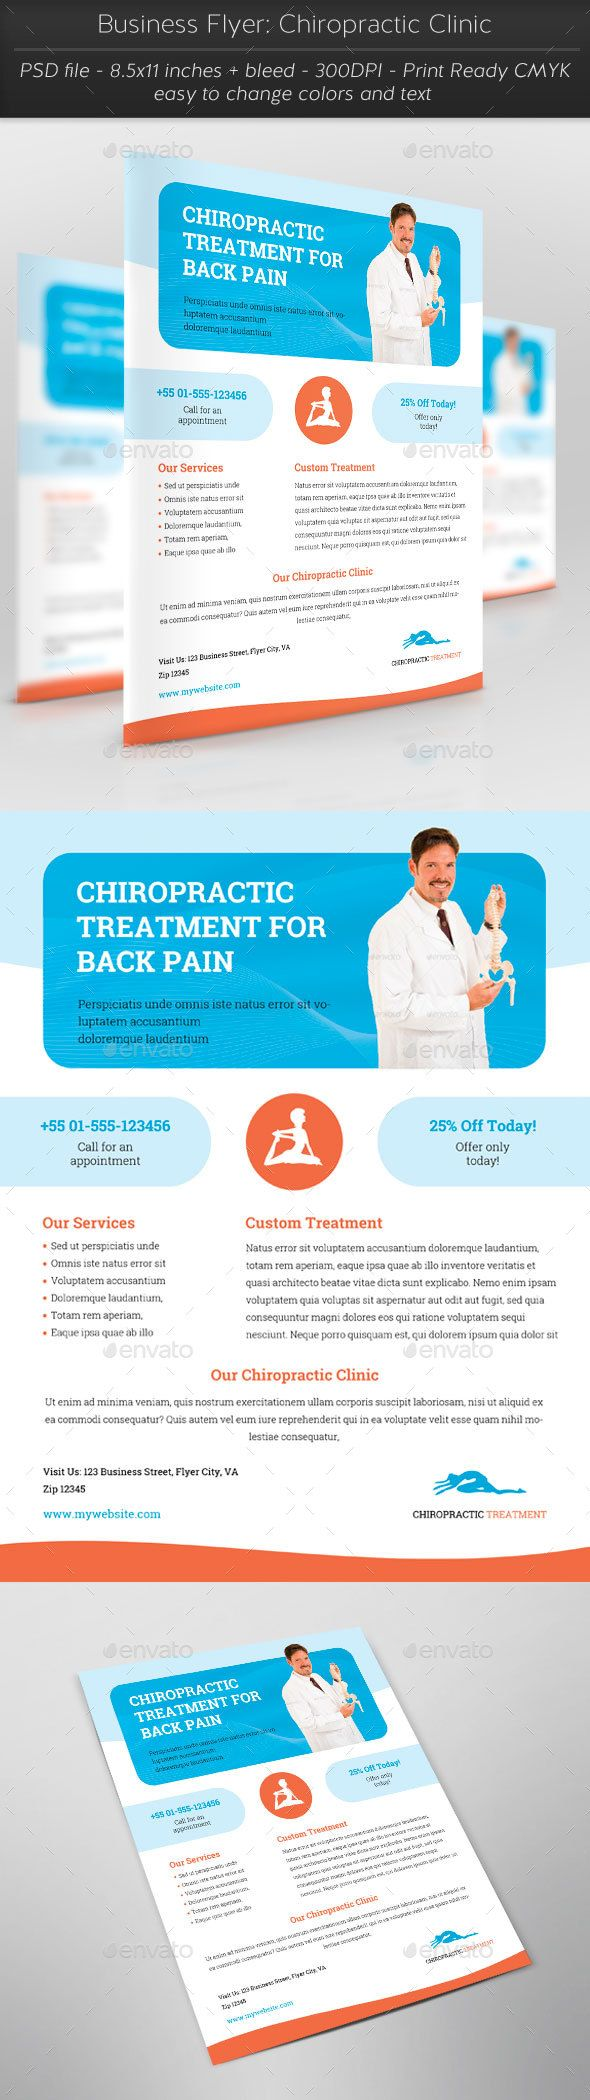 business flyer chiropractic clinic